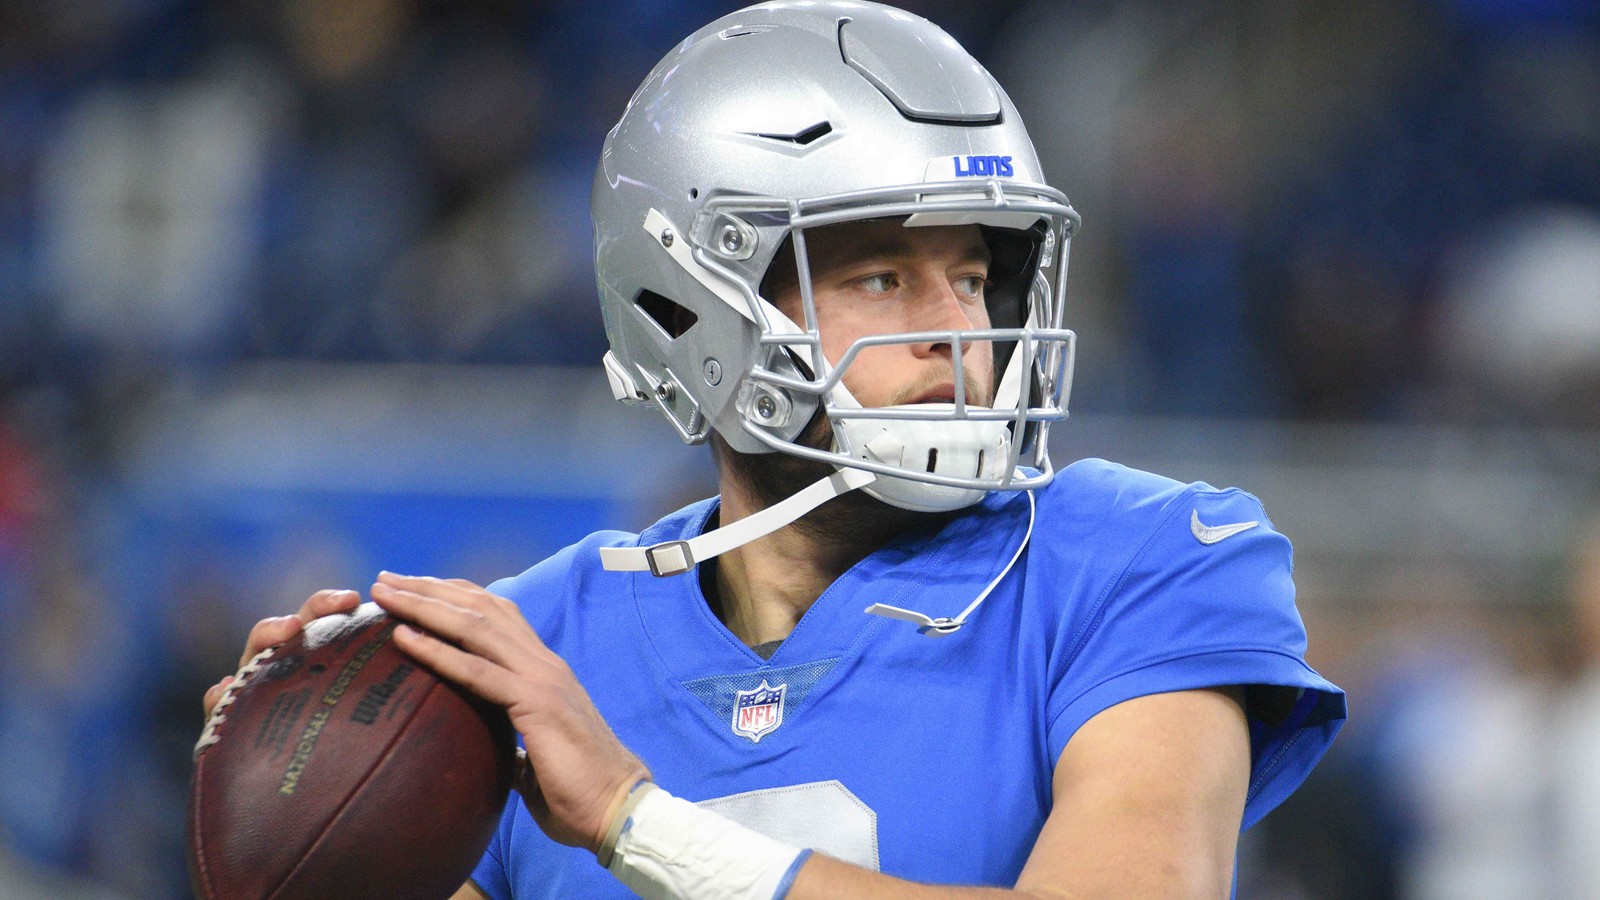 Lions Matthew Stafford suffers ankle injury on TD pass